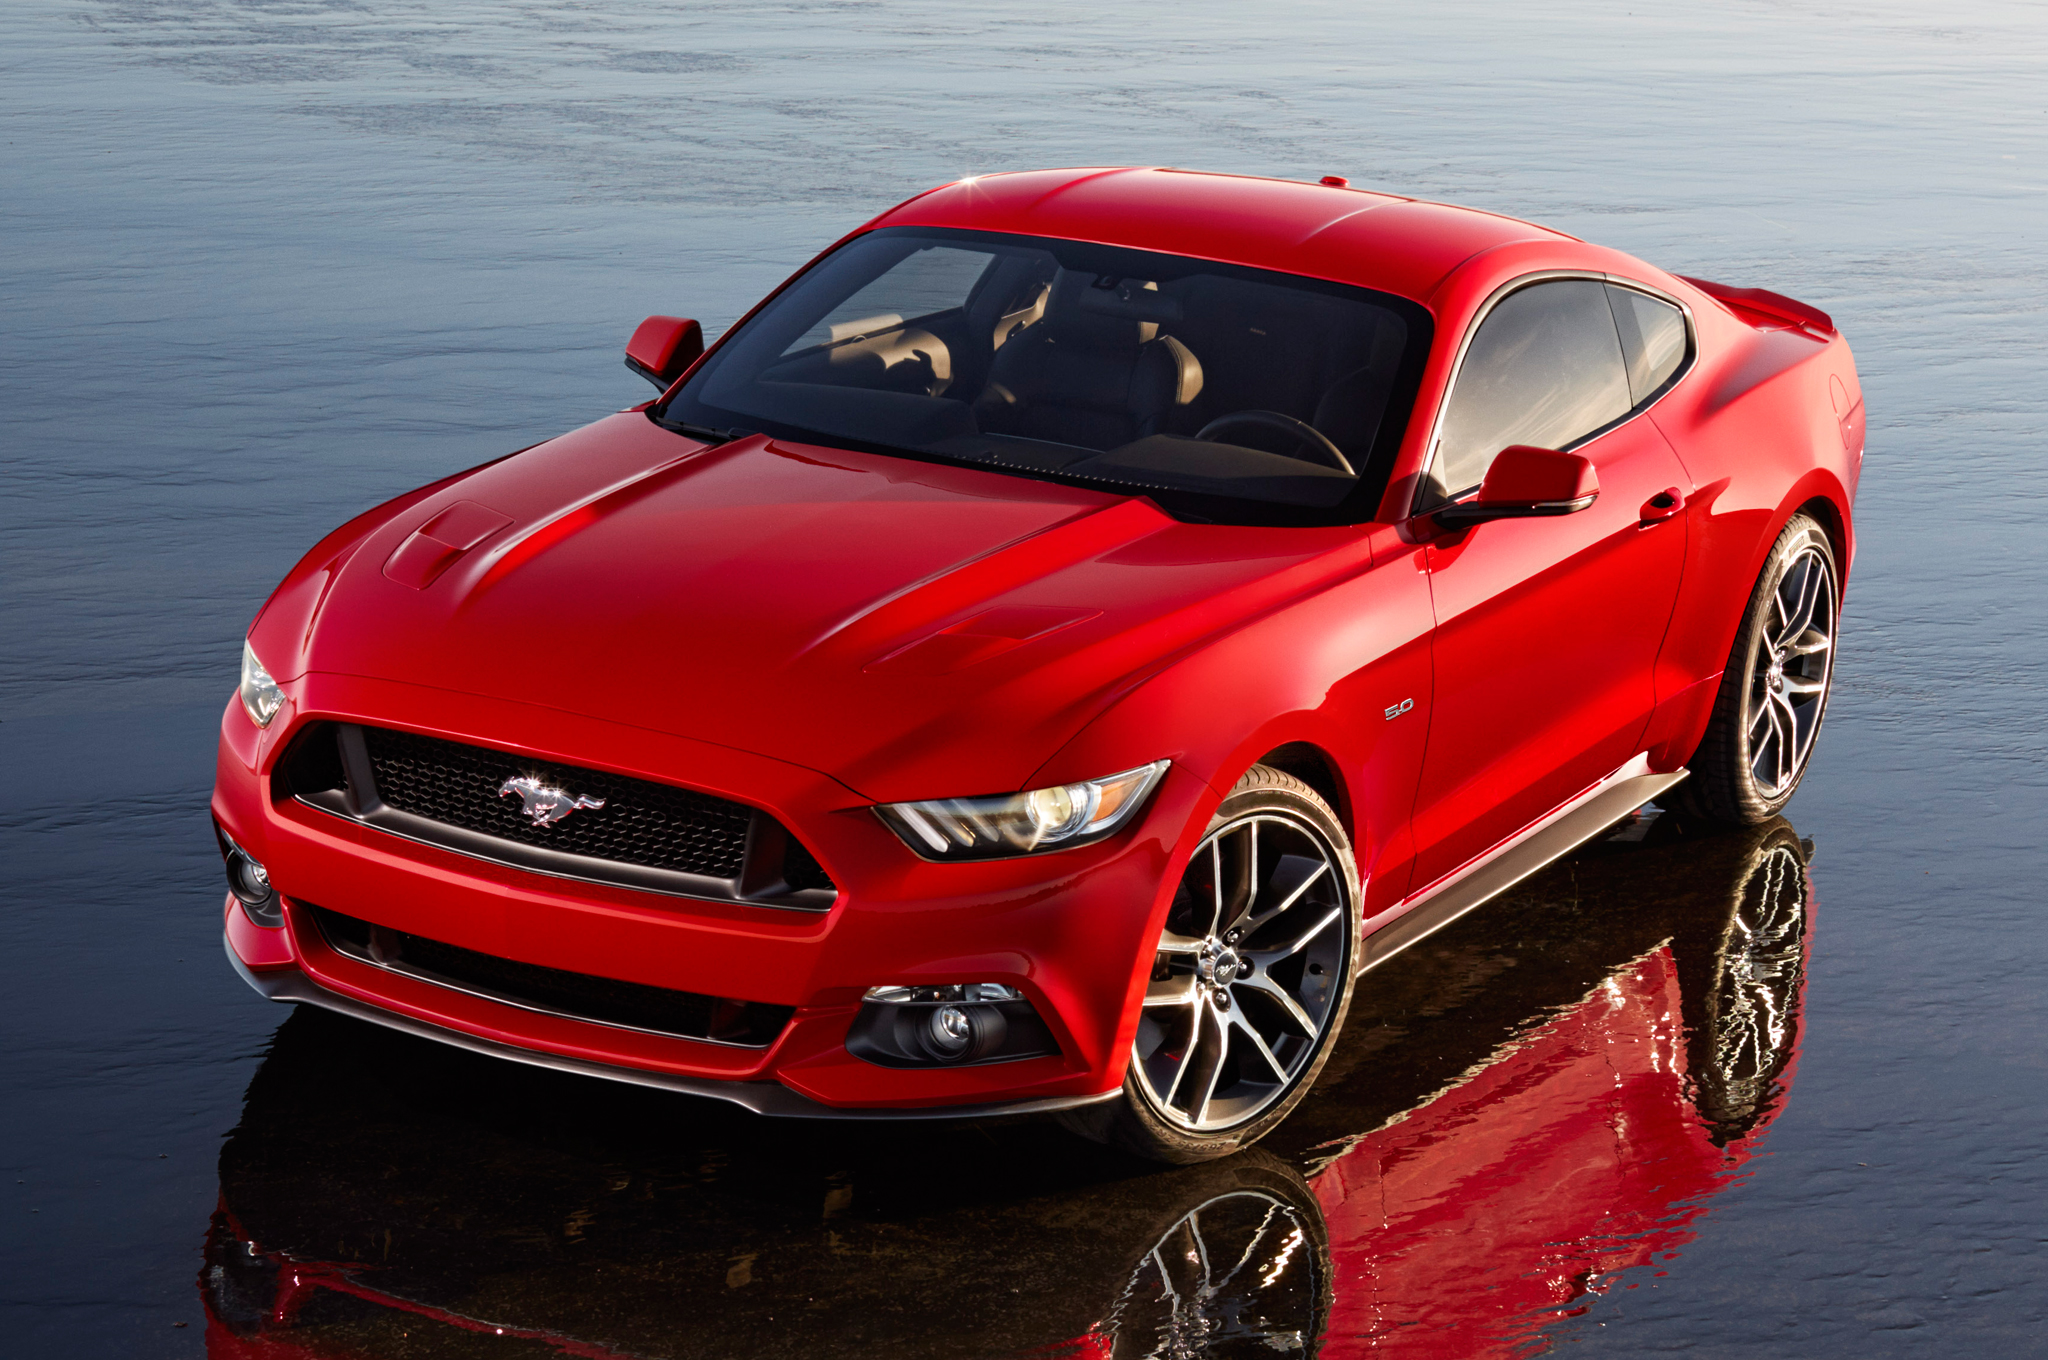 First 500 Euro 2015 Ford Mustangs Reserved in 30 Seconds